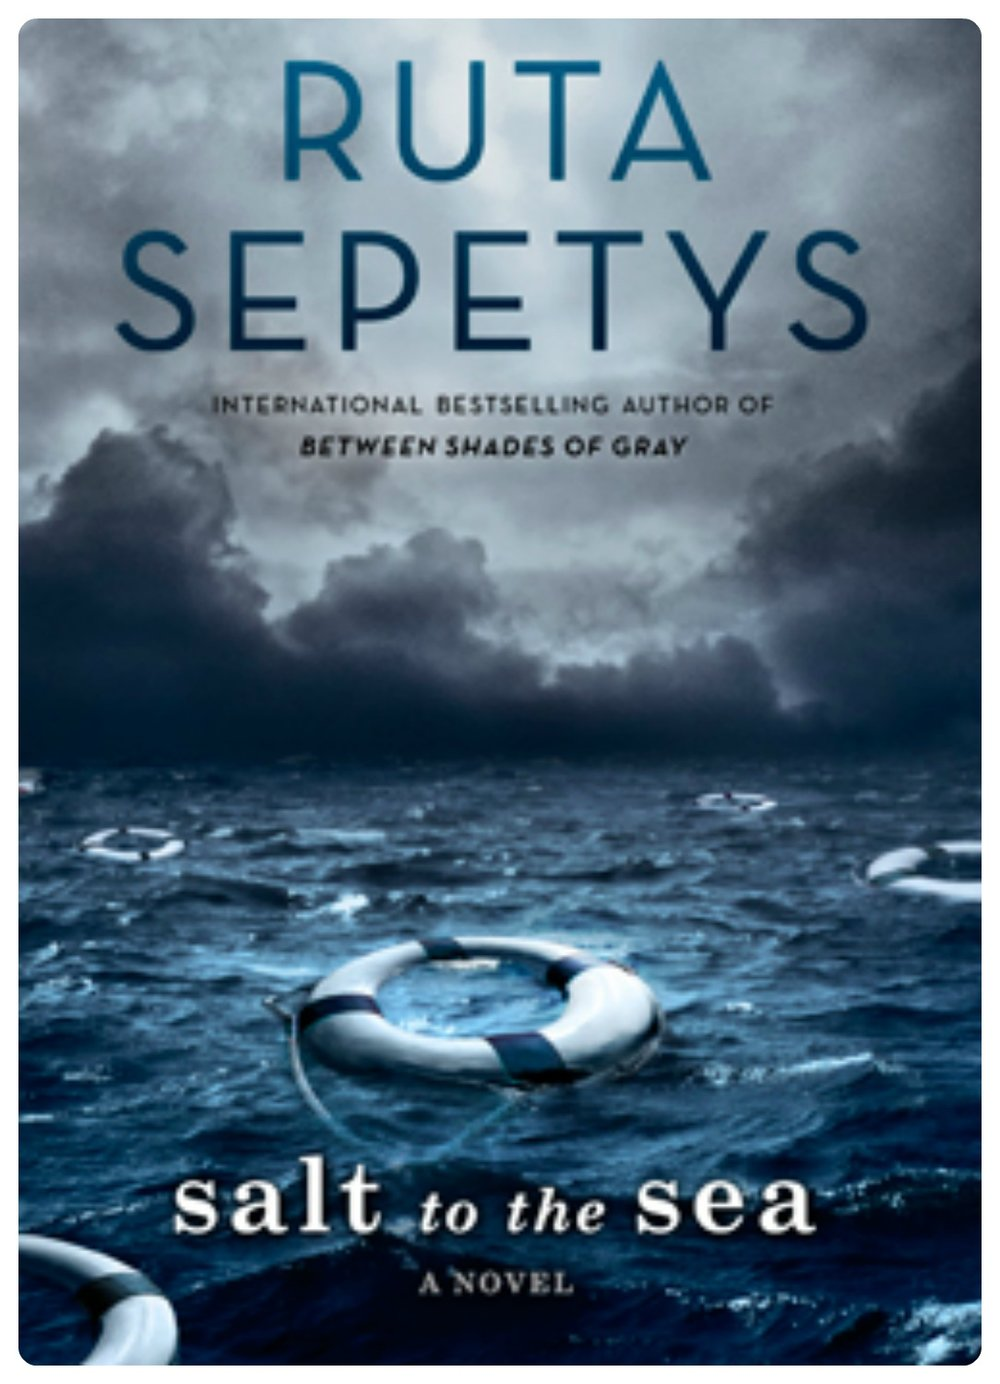 SALT TO THE SEA by Ruta Sepetys.